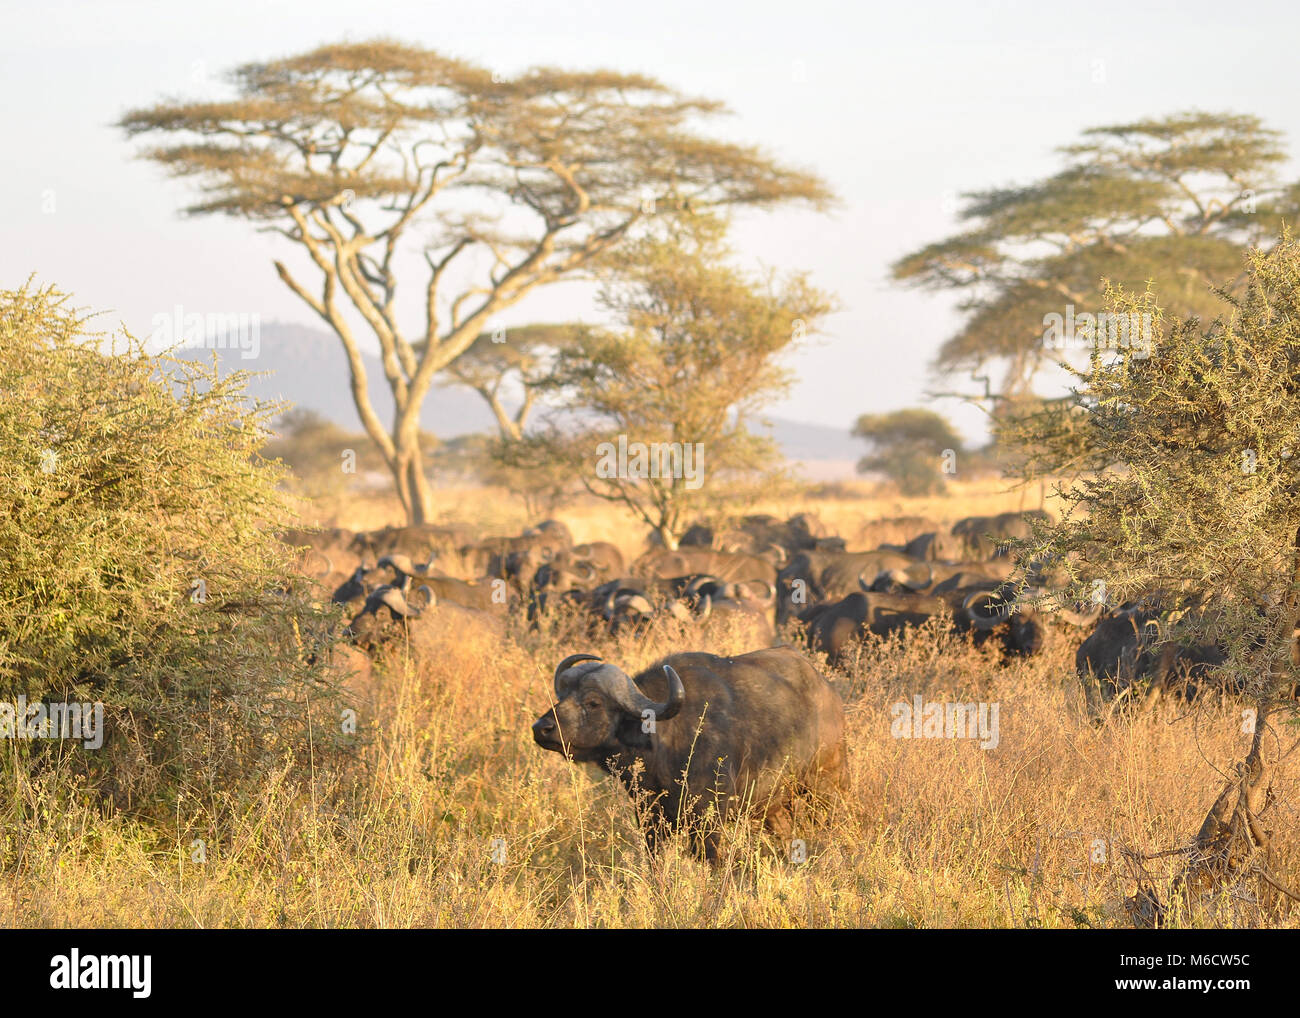 A herd of African Buffalo (Syncerus caffer) grazing within the Savannah plains of the Serengeti national park, Tanzania - Stock Image